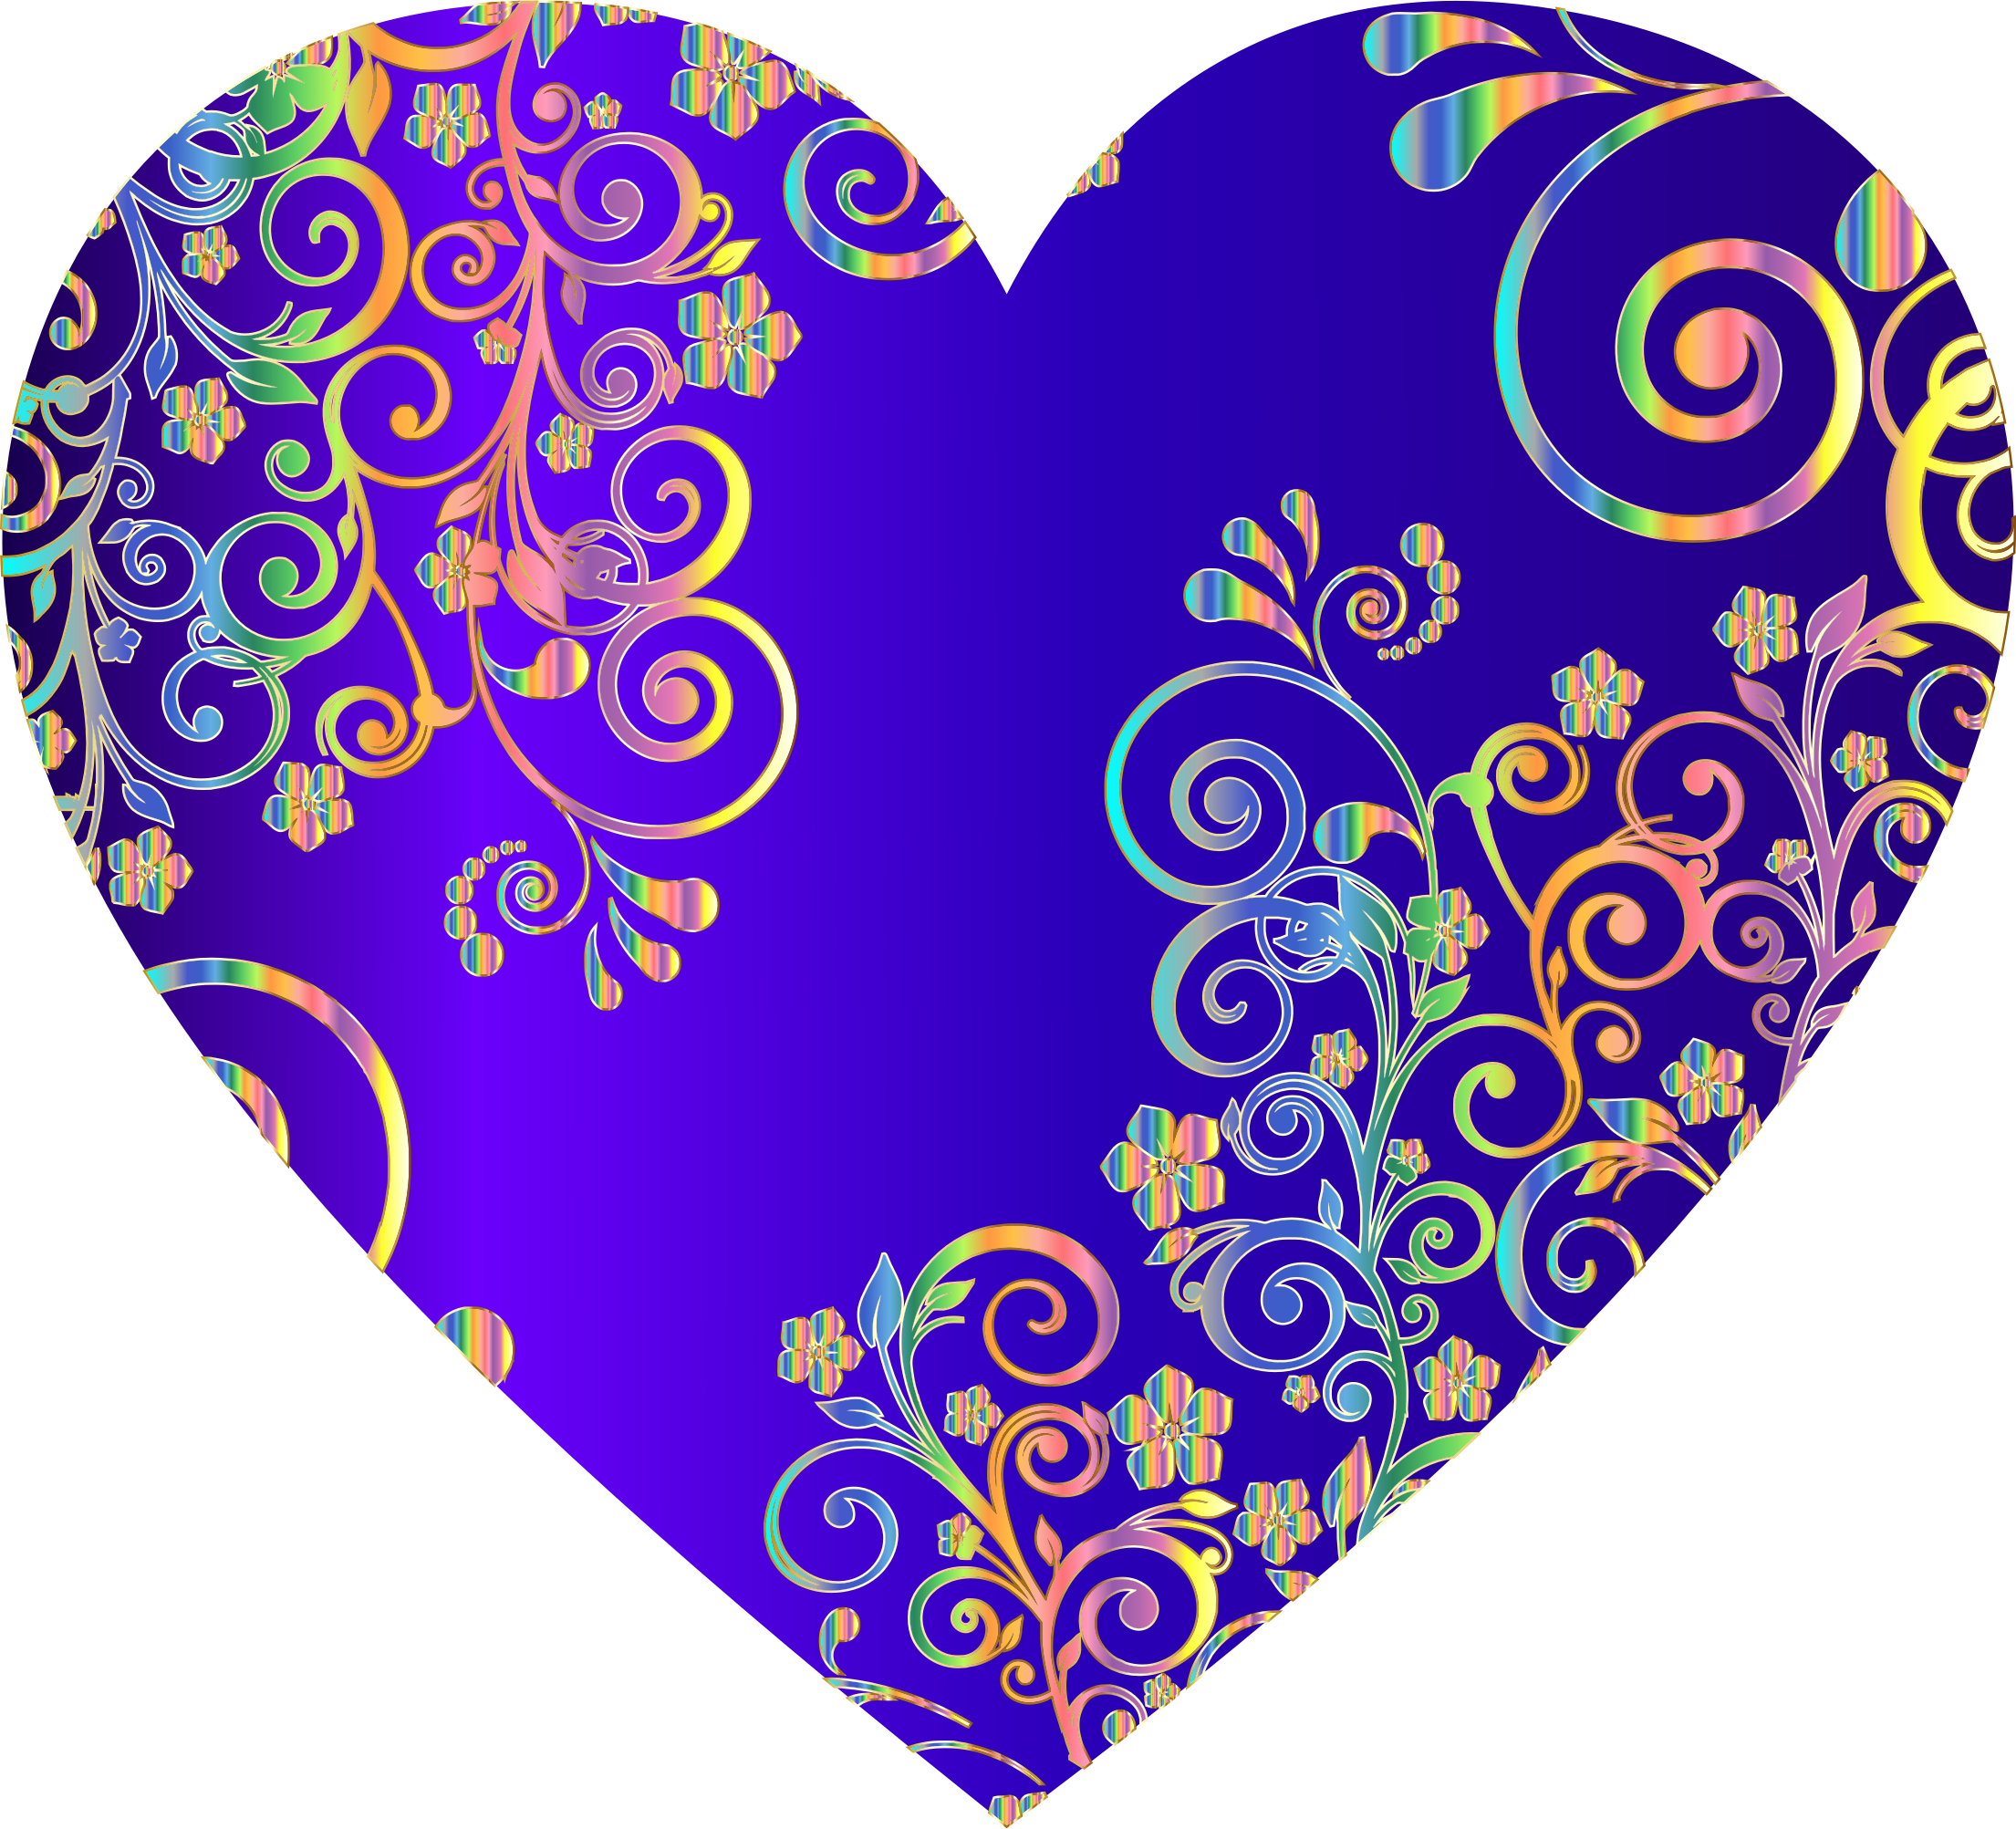 Prismatic Floral Flourish Heart 15 by GDJ